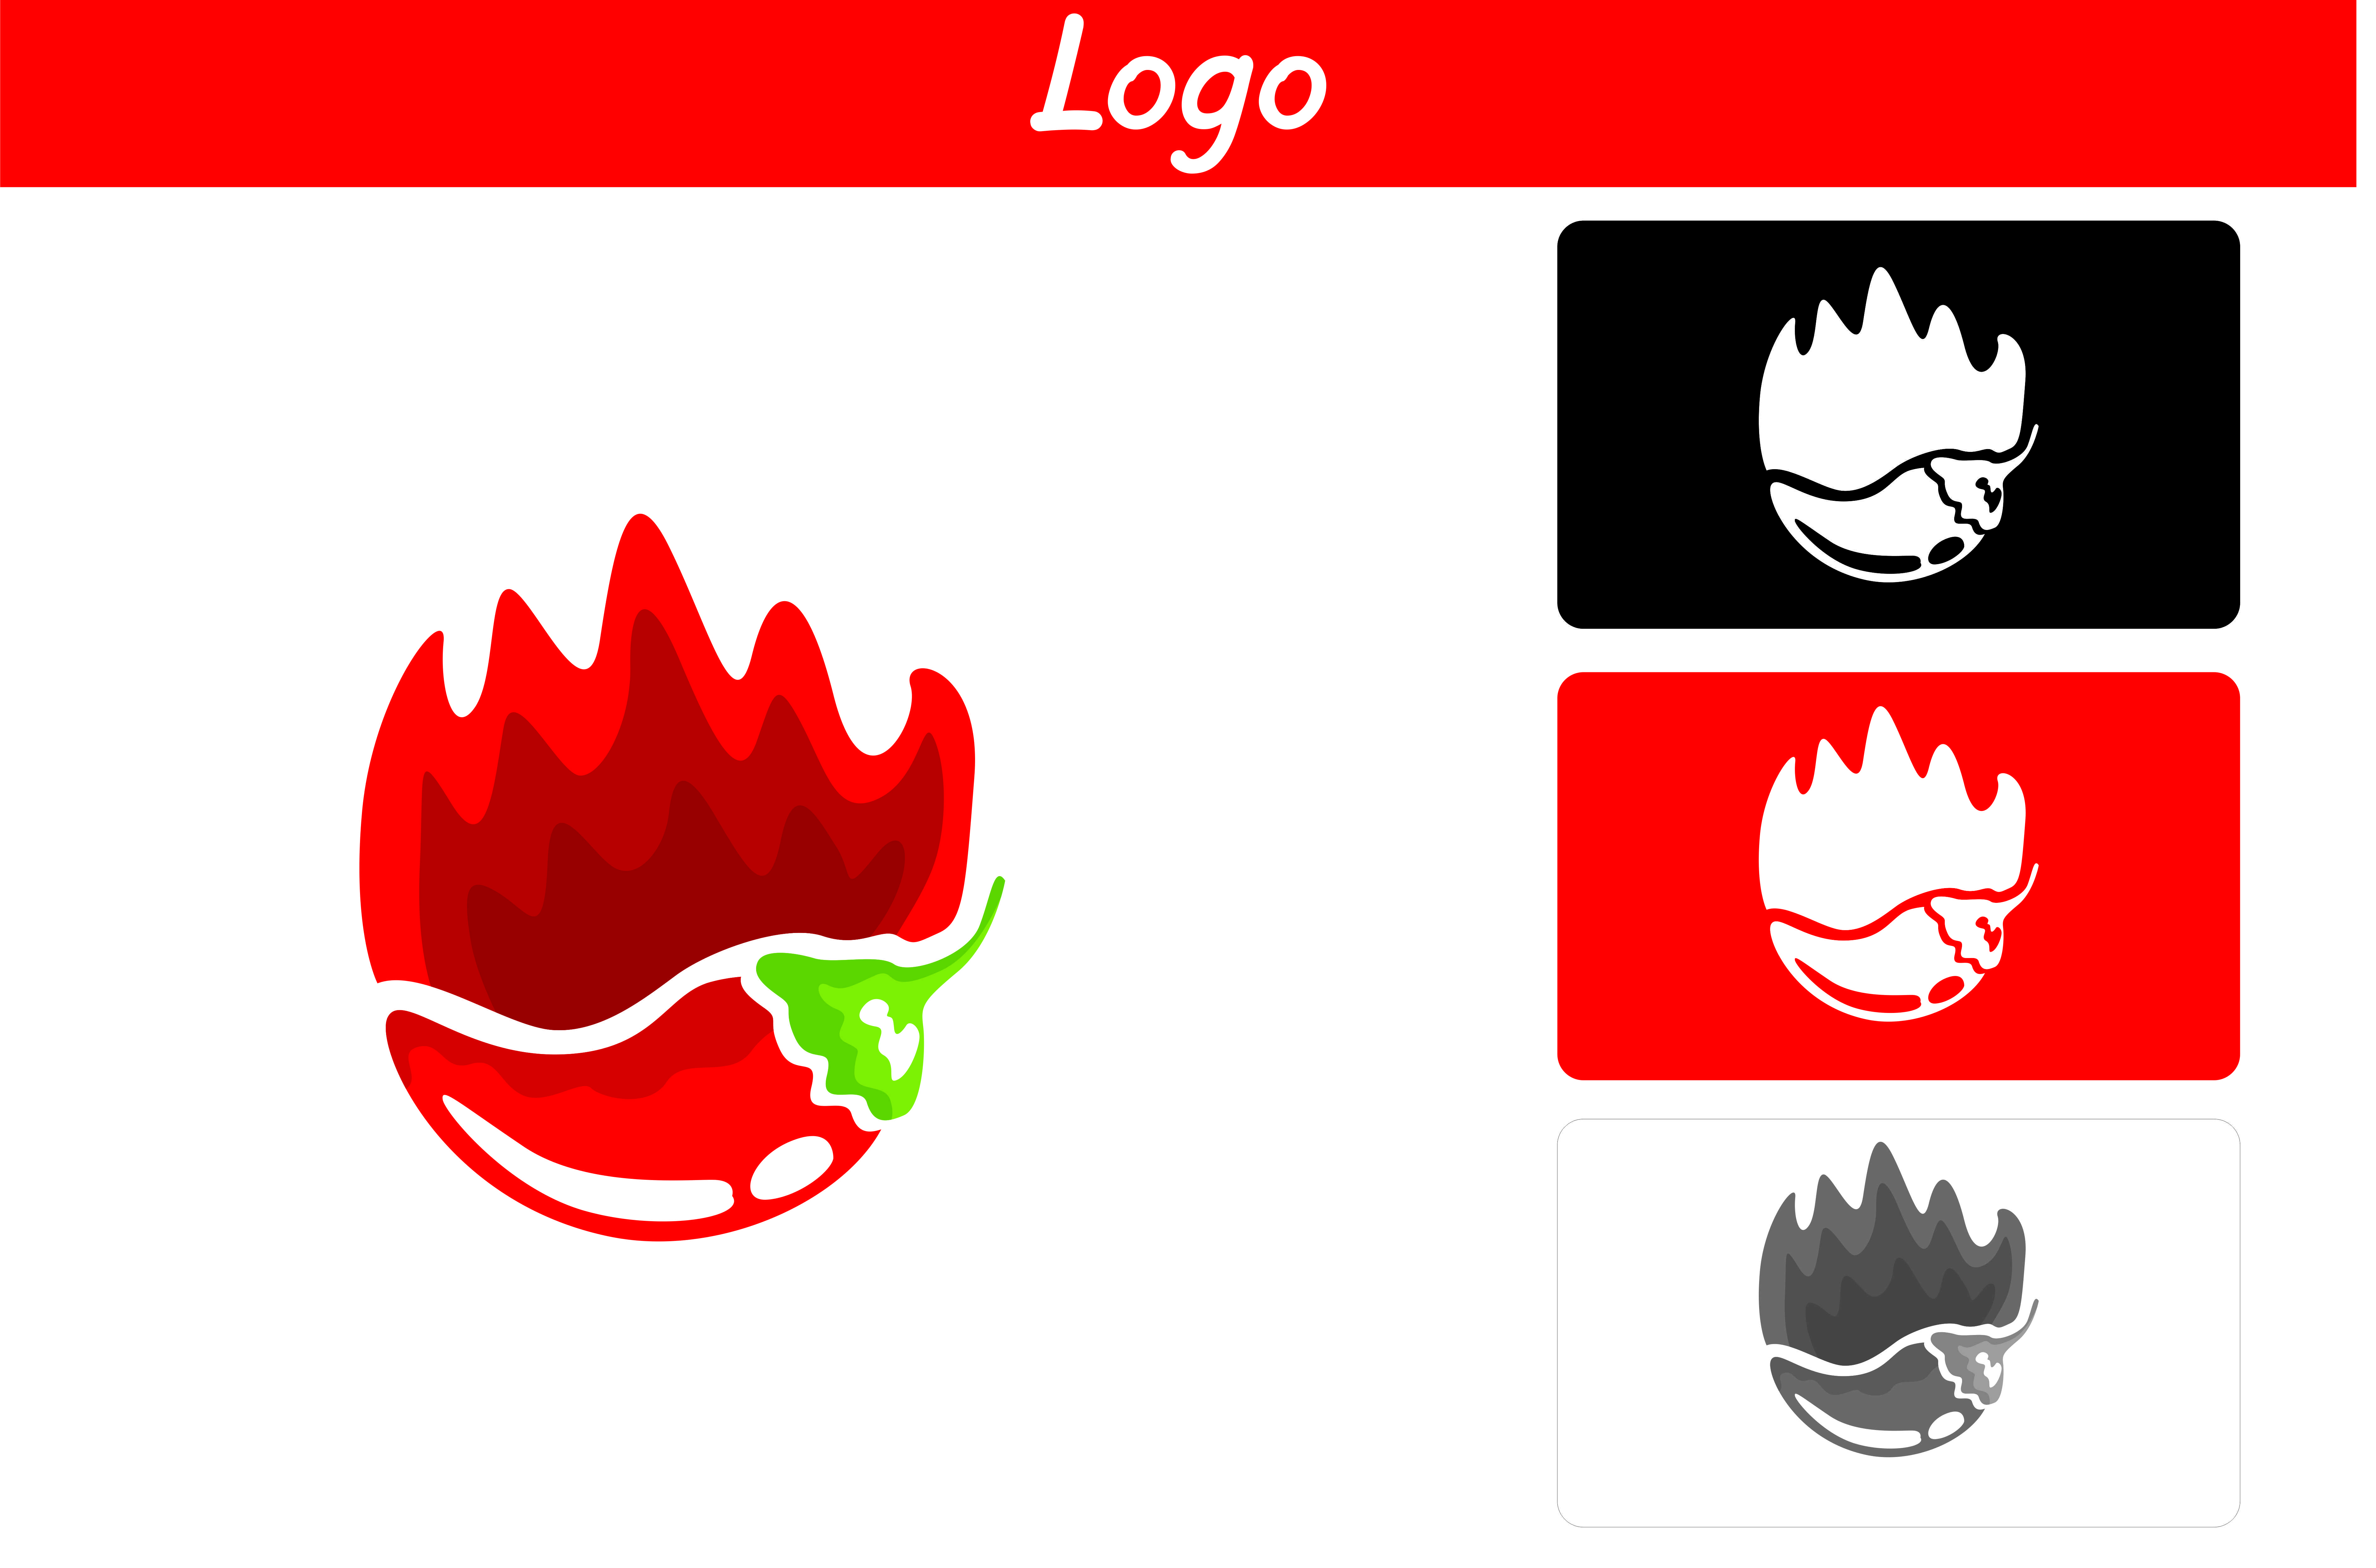 Download Free Red Chili Logo Graphic By Arief Sapta Adjie Creative Fabrica for Cricut Explore, Silhouette and other cutting machines.